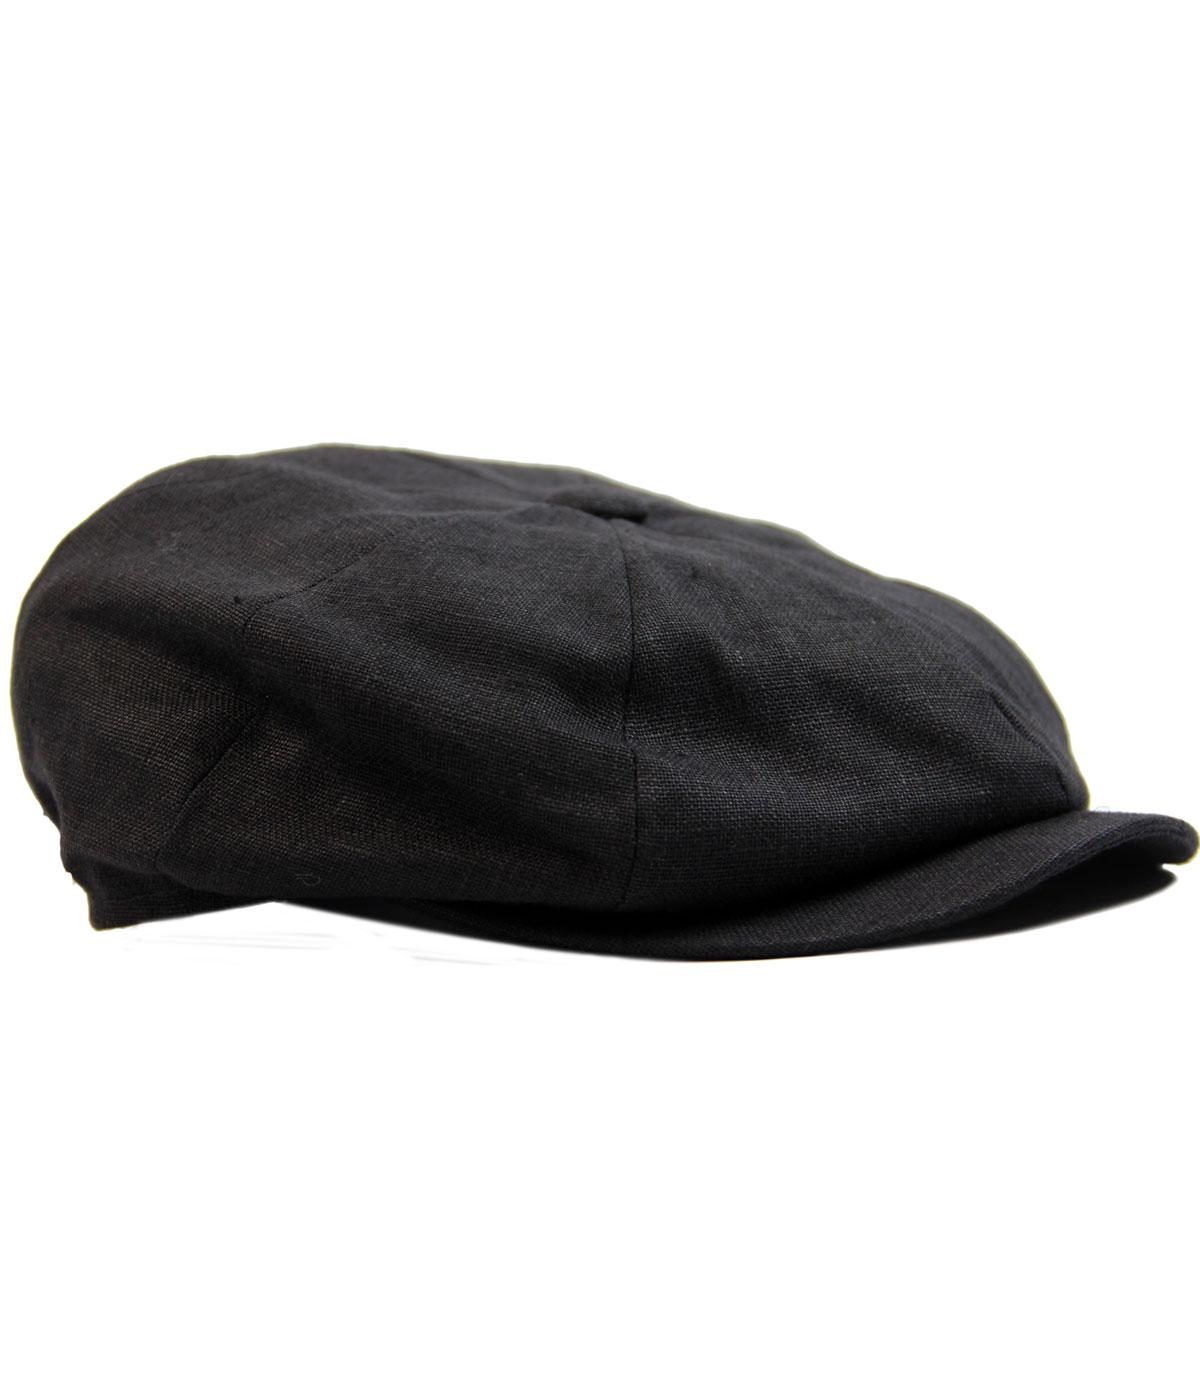 Alfie FAILSWORTH Irish Linen 8 Panel Gatsby Cap